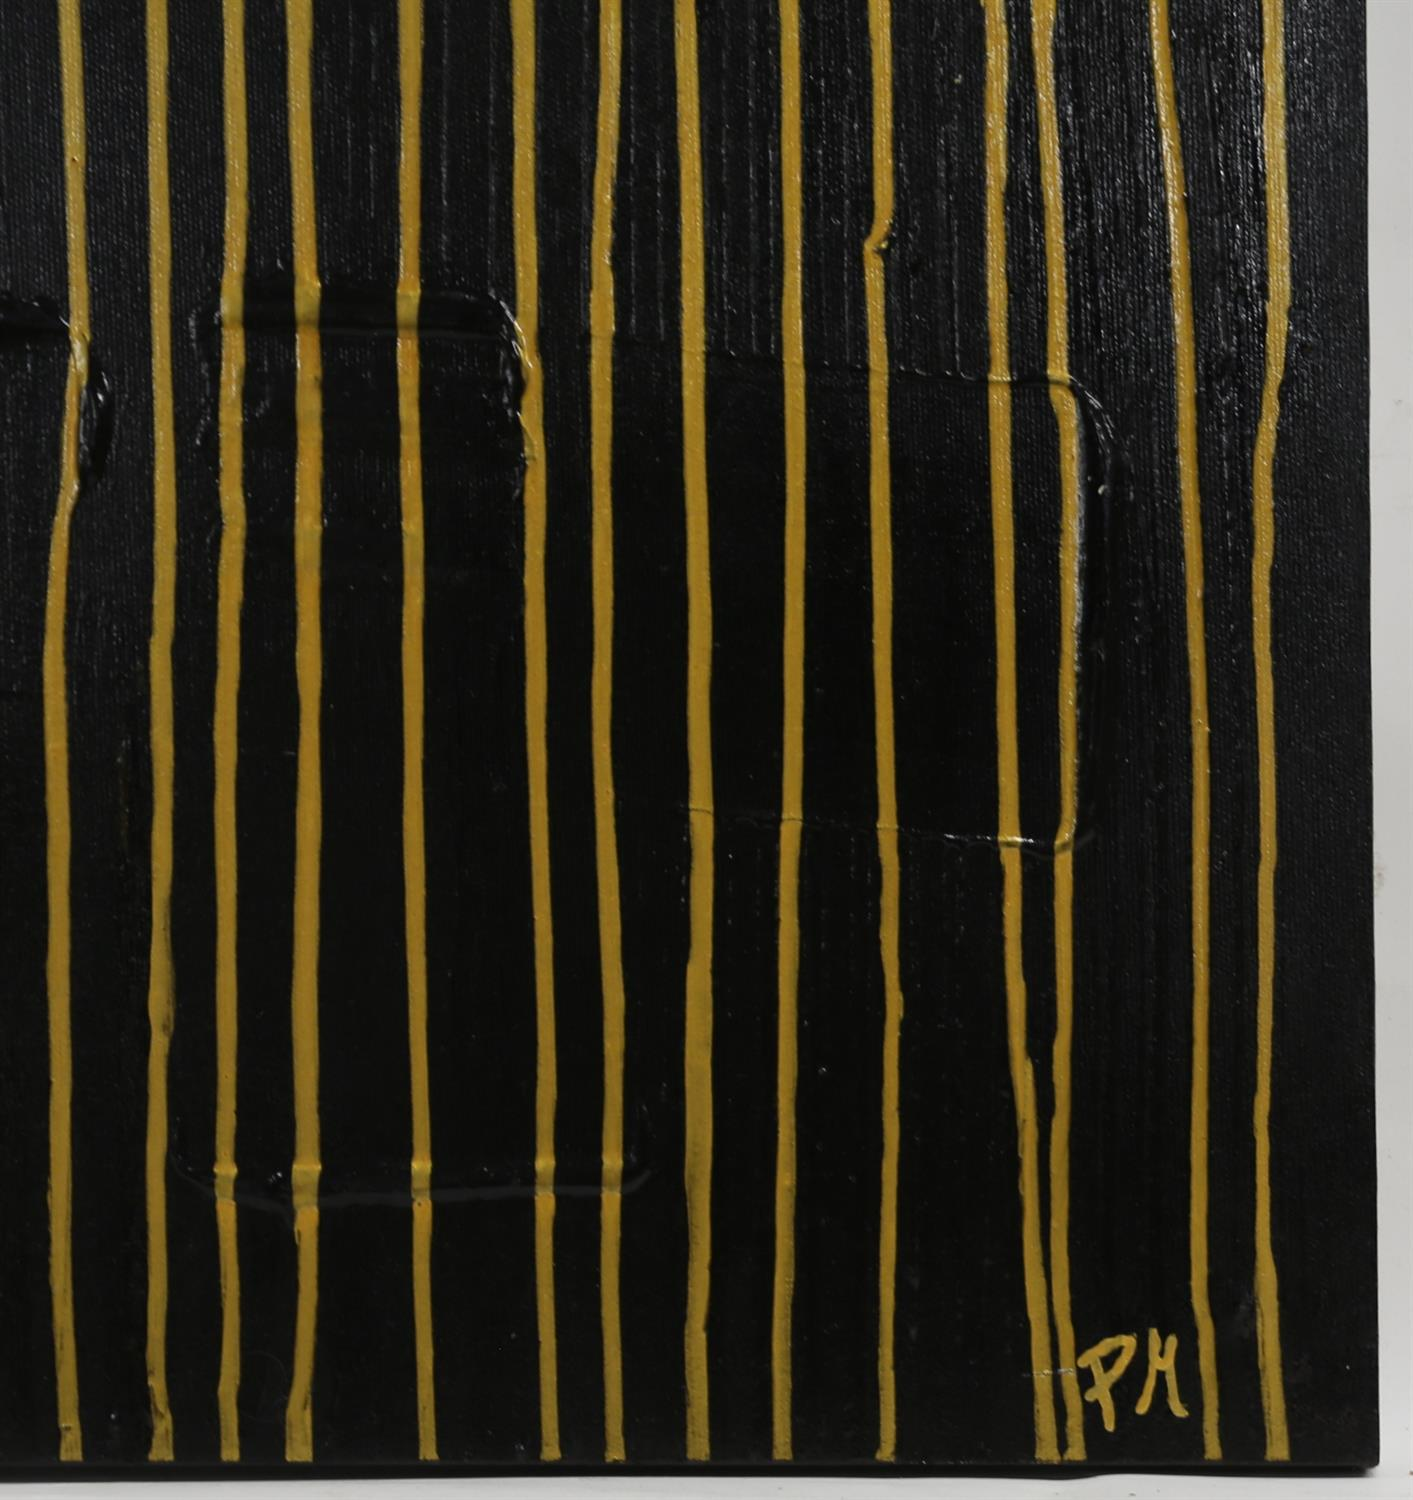 Piero Montanelli, 20th/21st century, abstract composition, black on gold, signed with initials and - Image 2 of 2